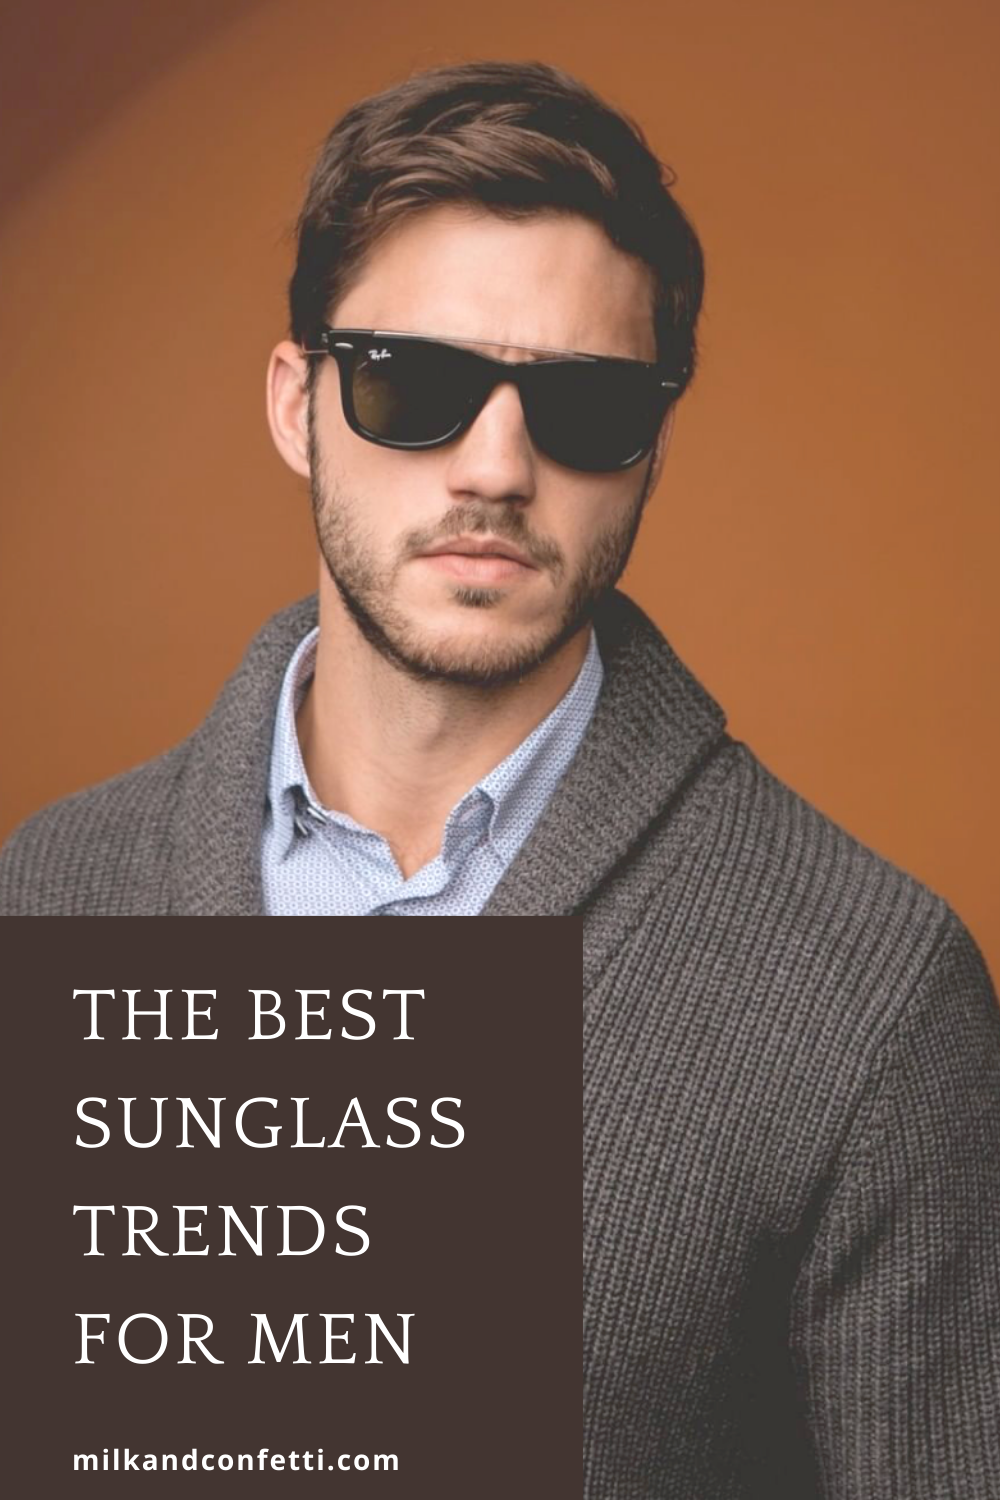 Top sunglass trends for men.